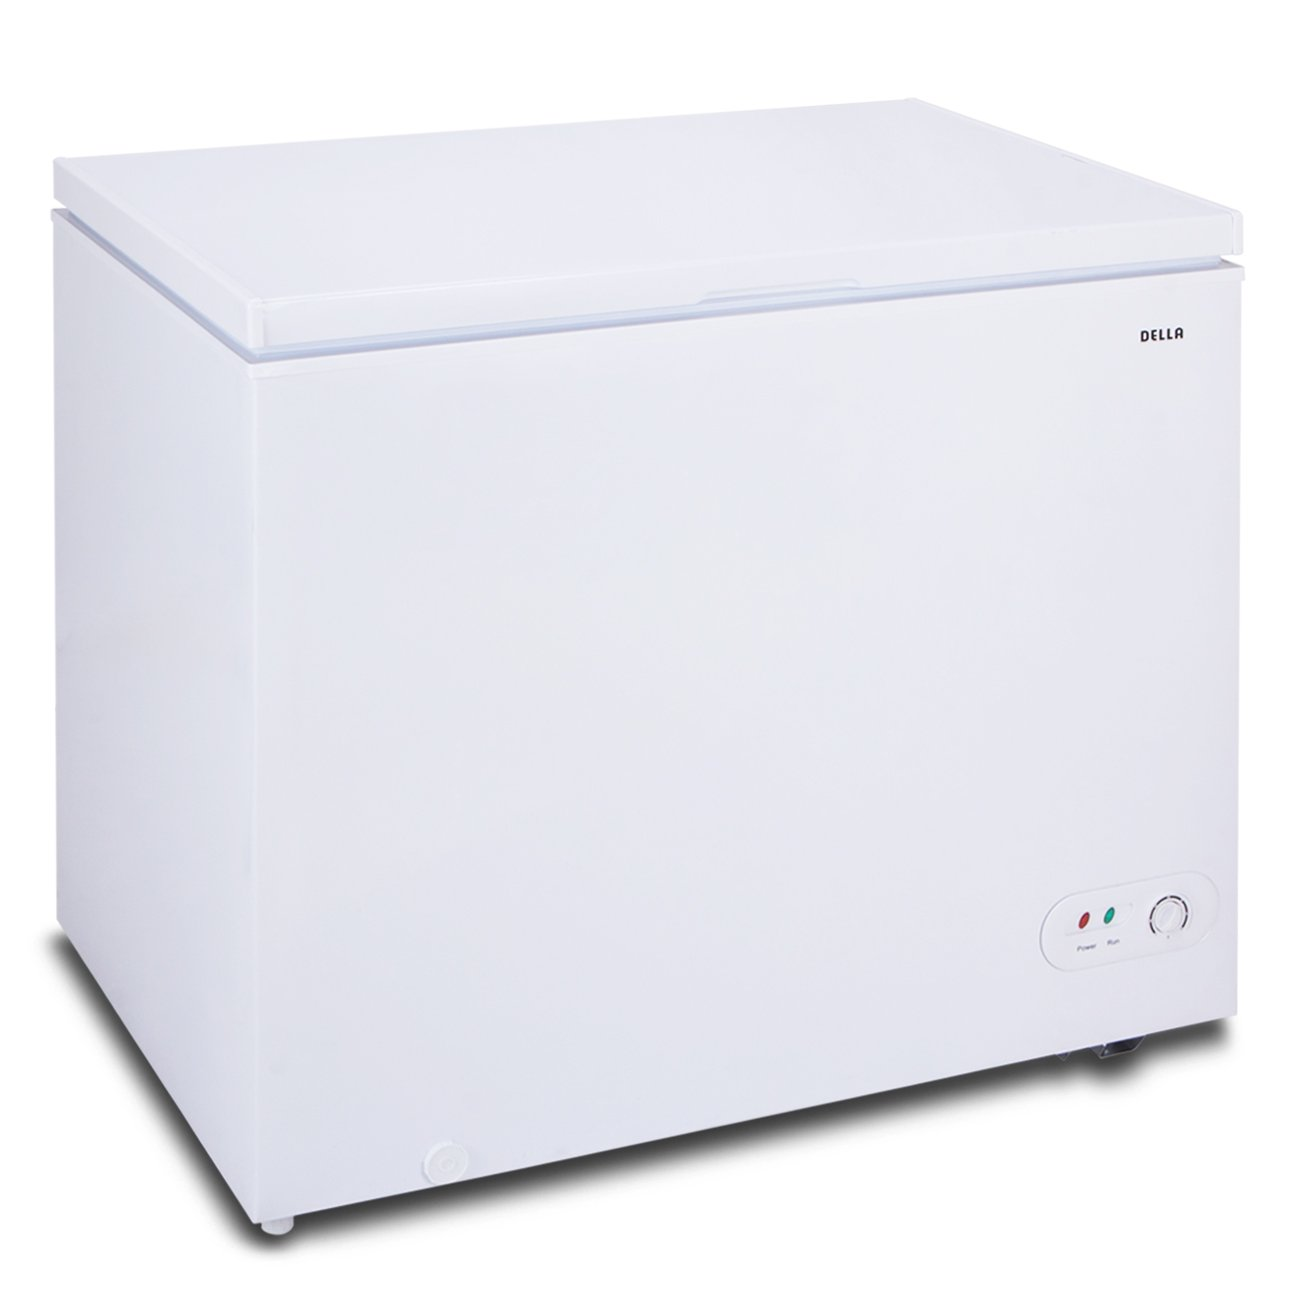 Della Upright Chest Freezer, 6.9 Cubic Feet, Adjustable thermostat, White